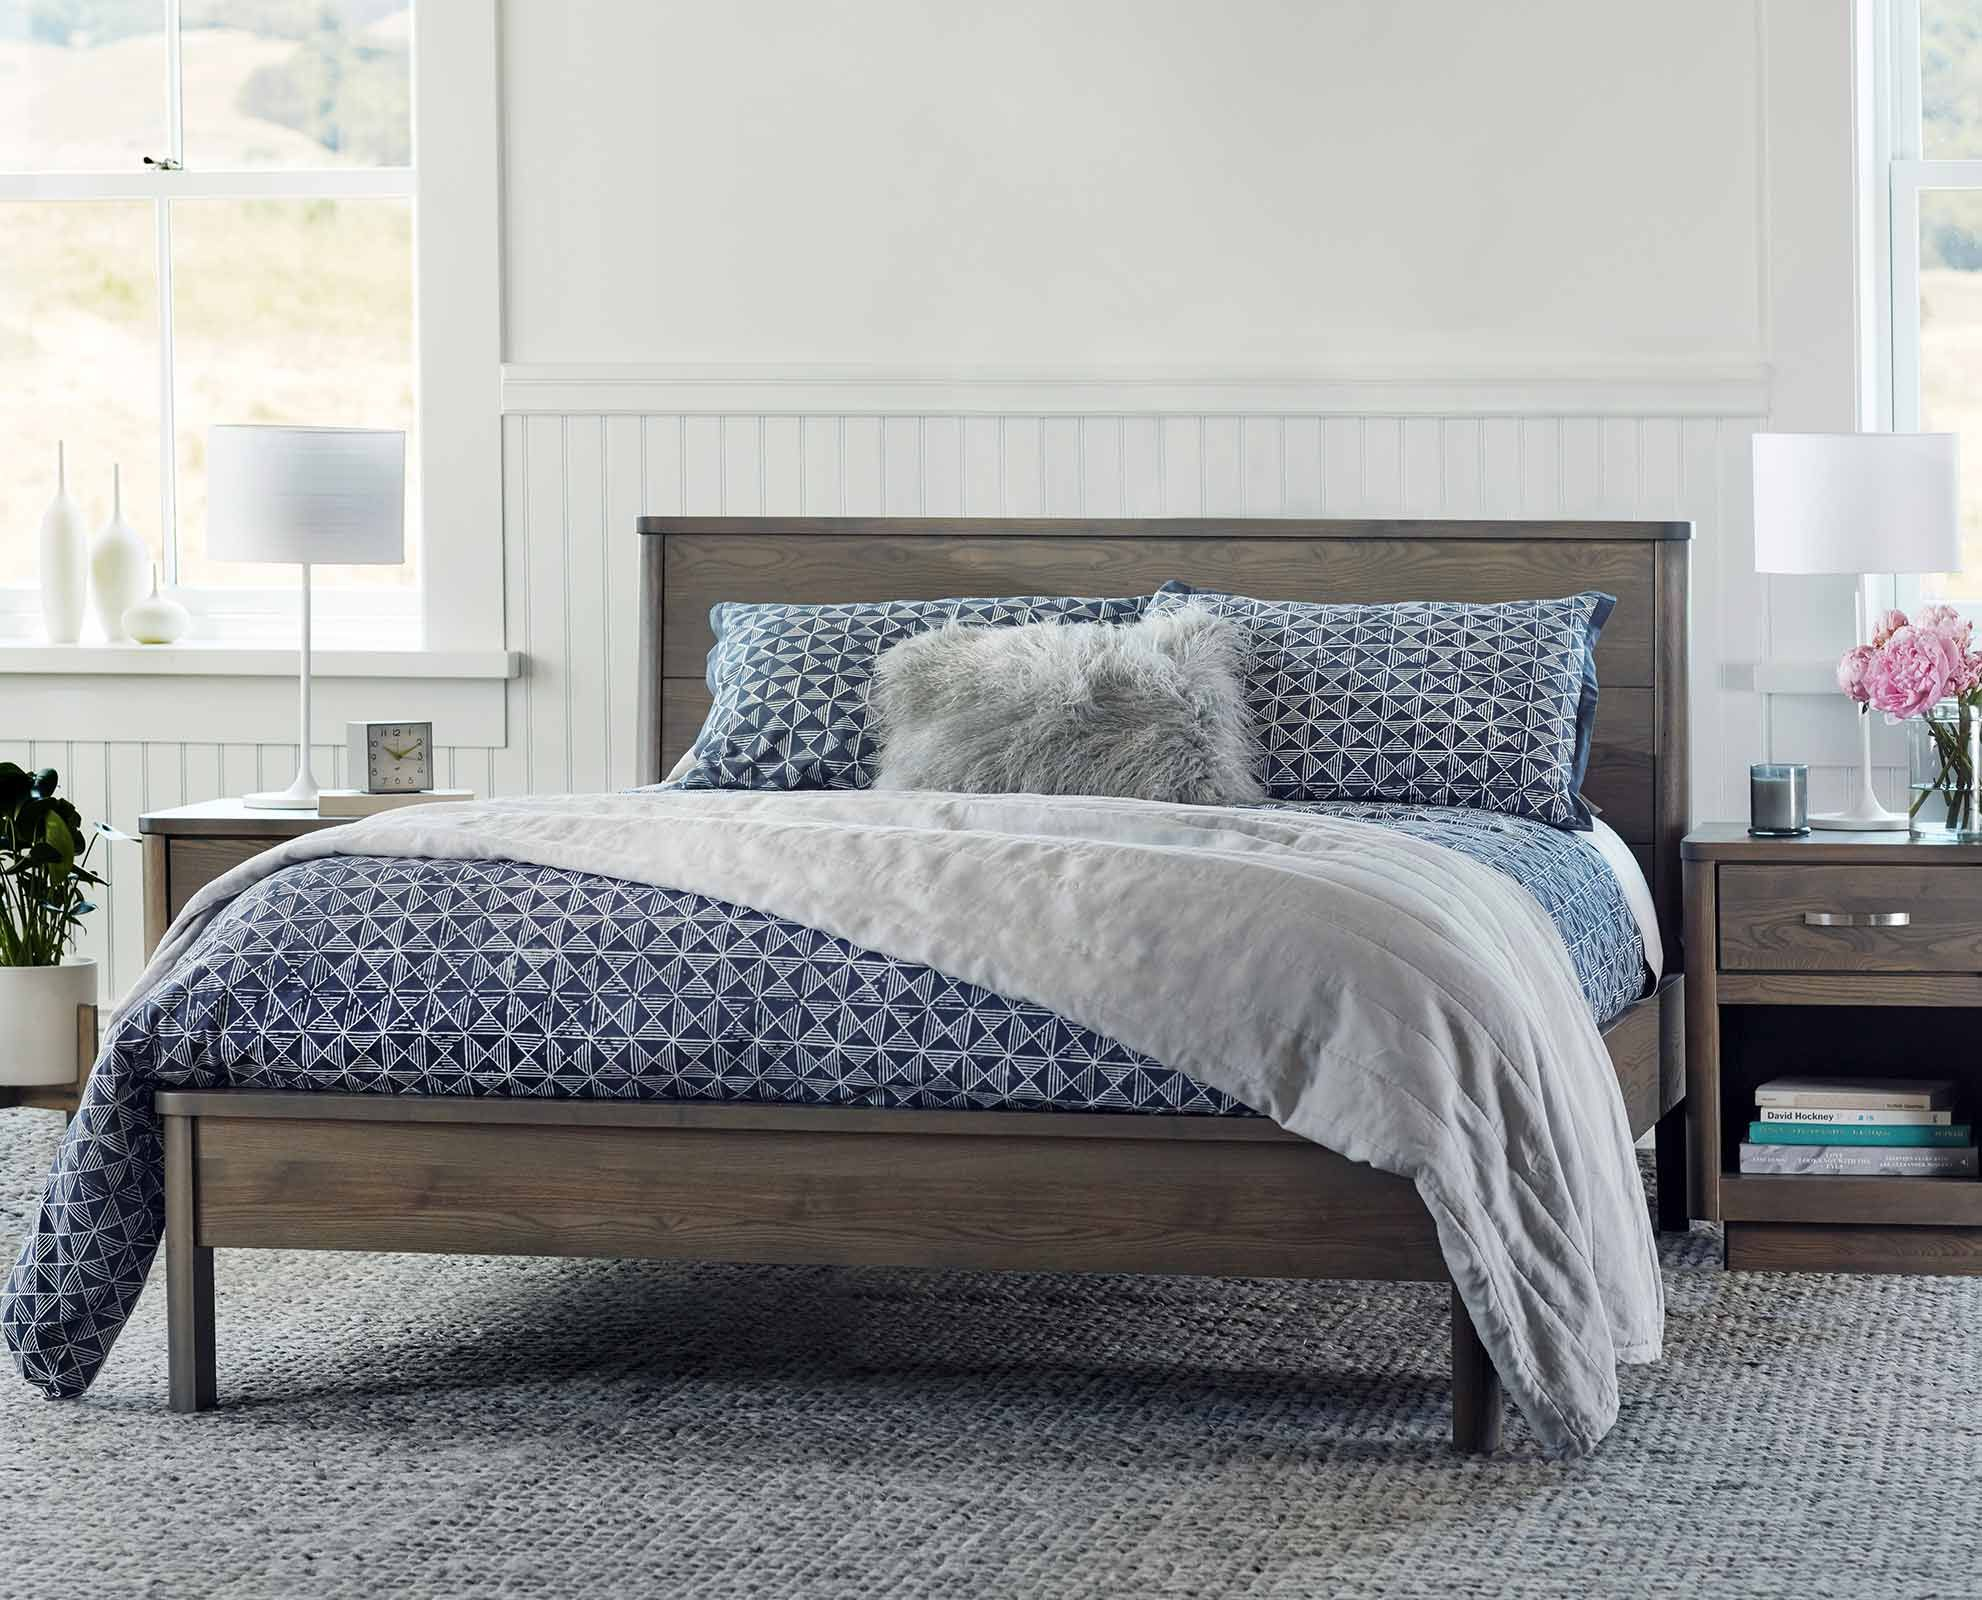 Expertly handcrafted from solid ash wood, the Nordby bed from ...